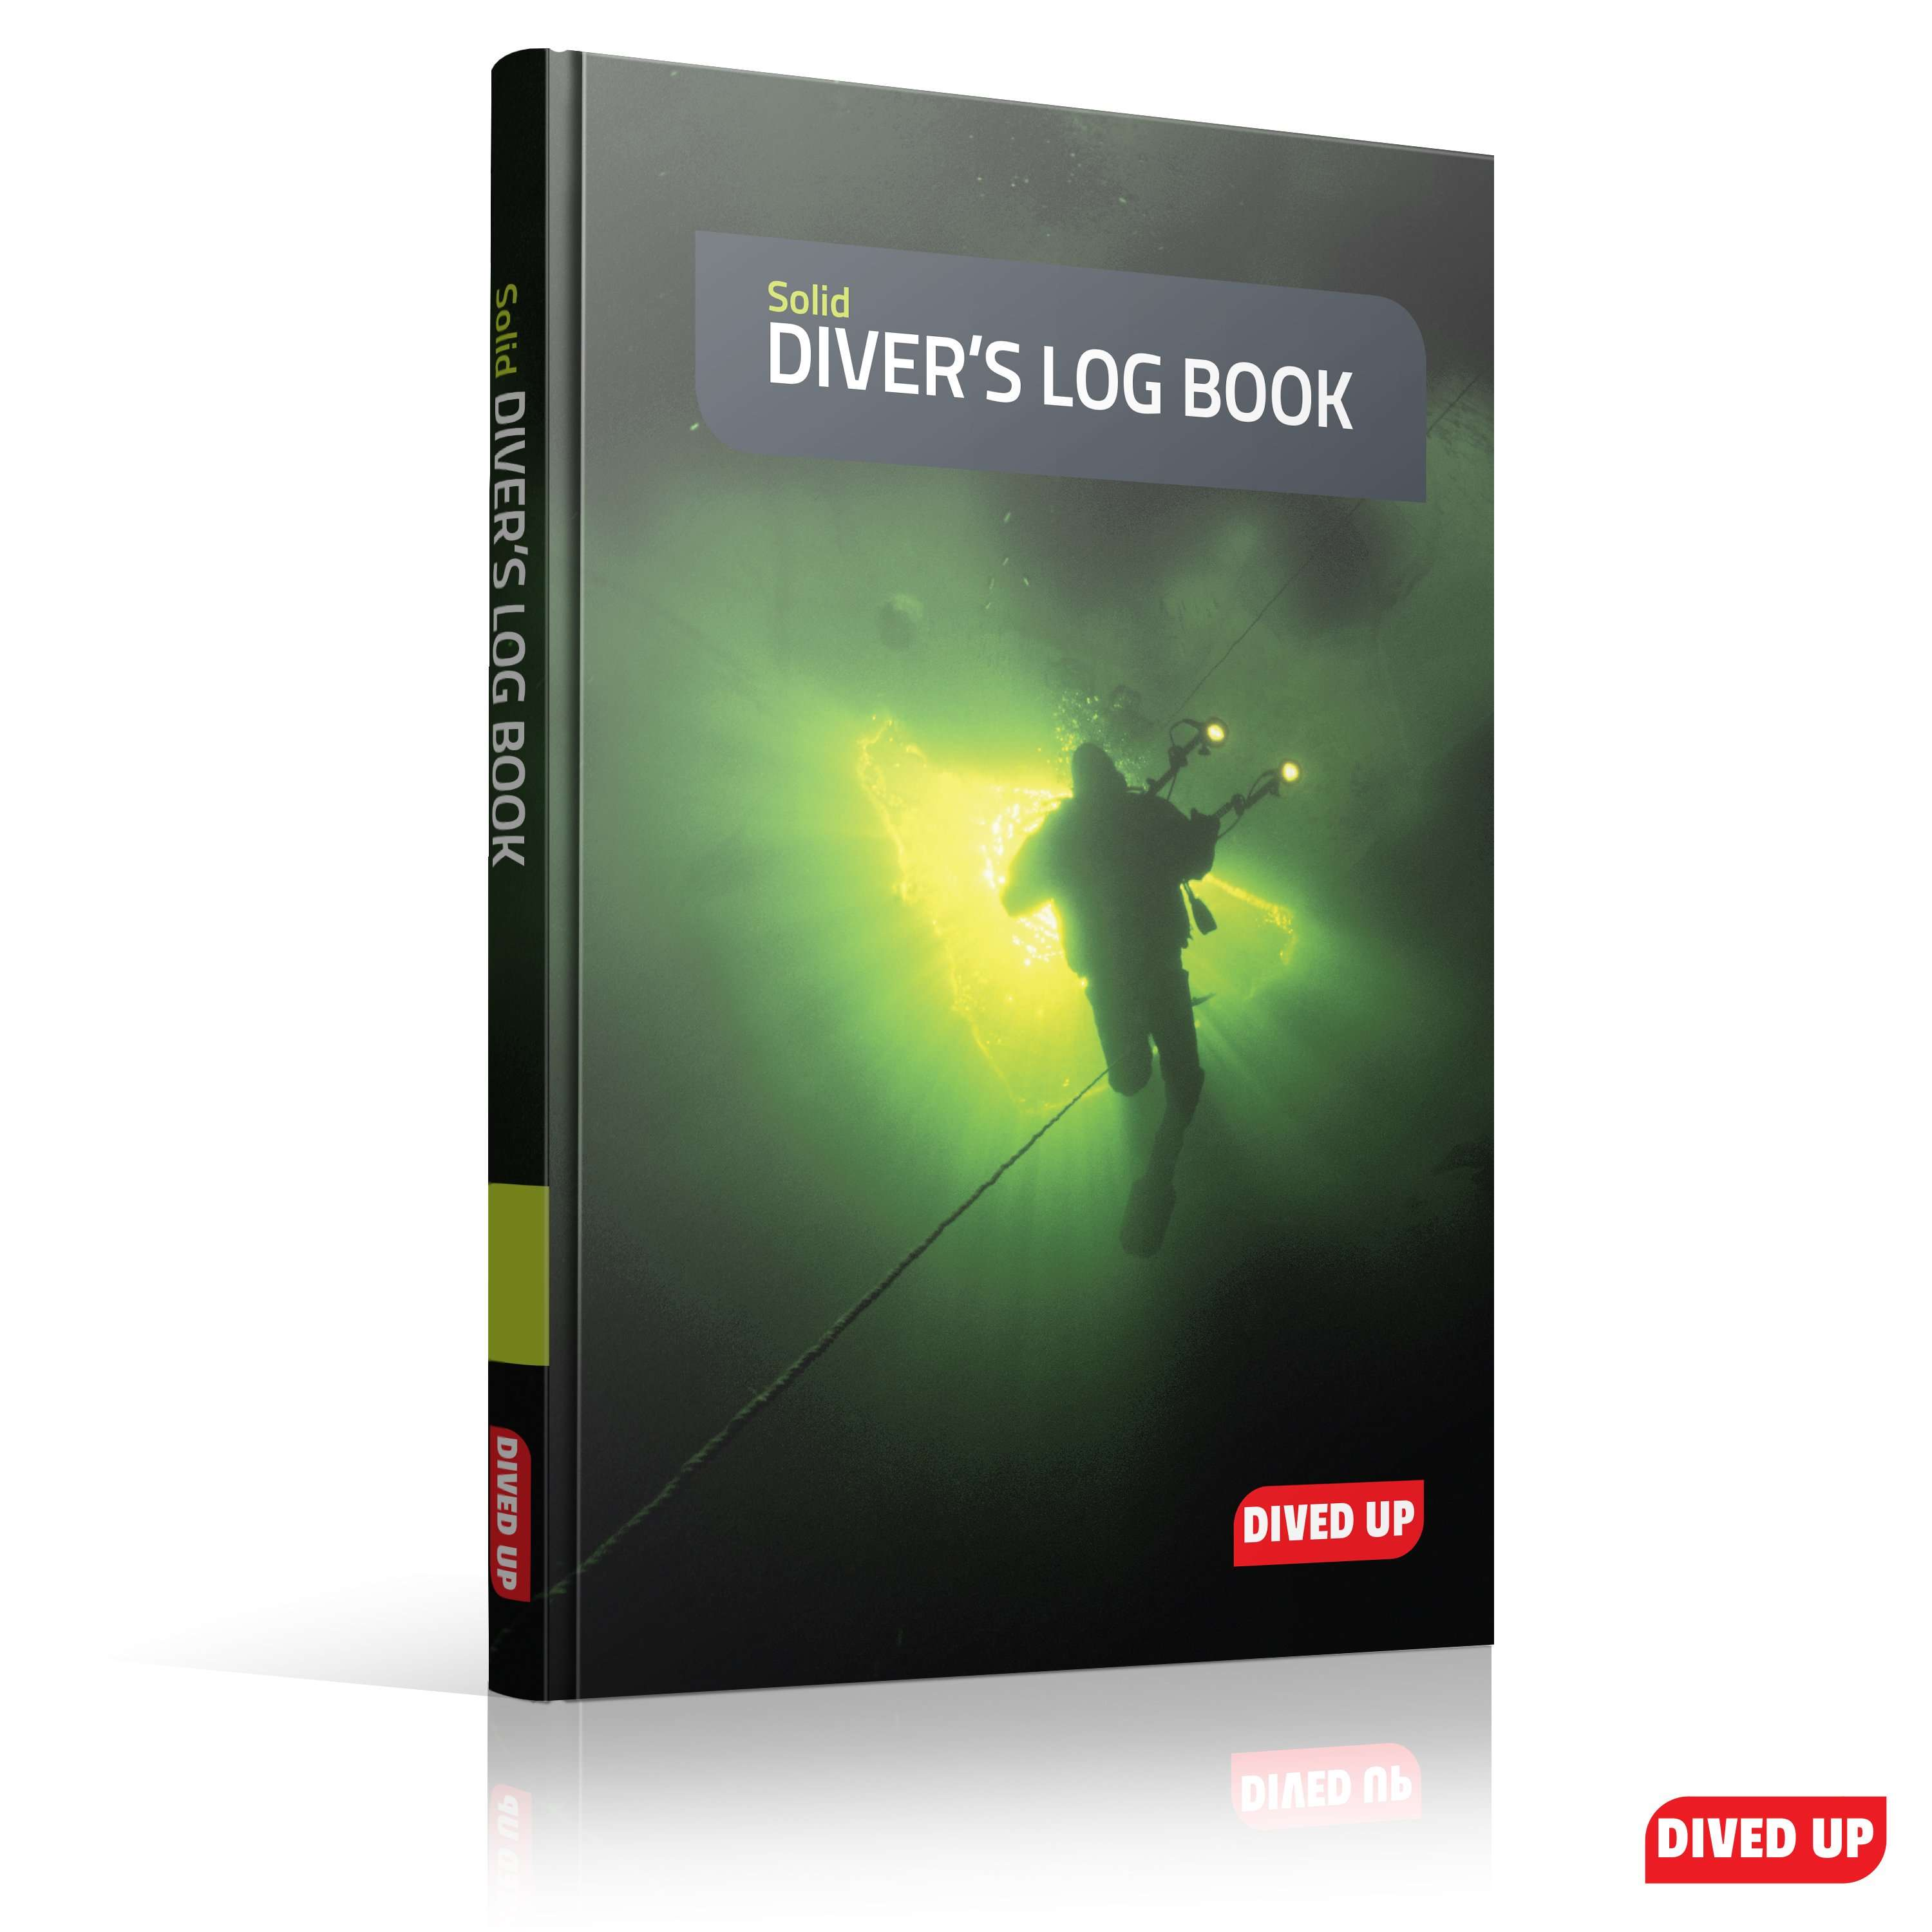 Solid diver 39 s log book the hard wearing diving log book - Dive log book ...